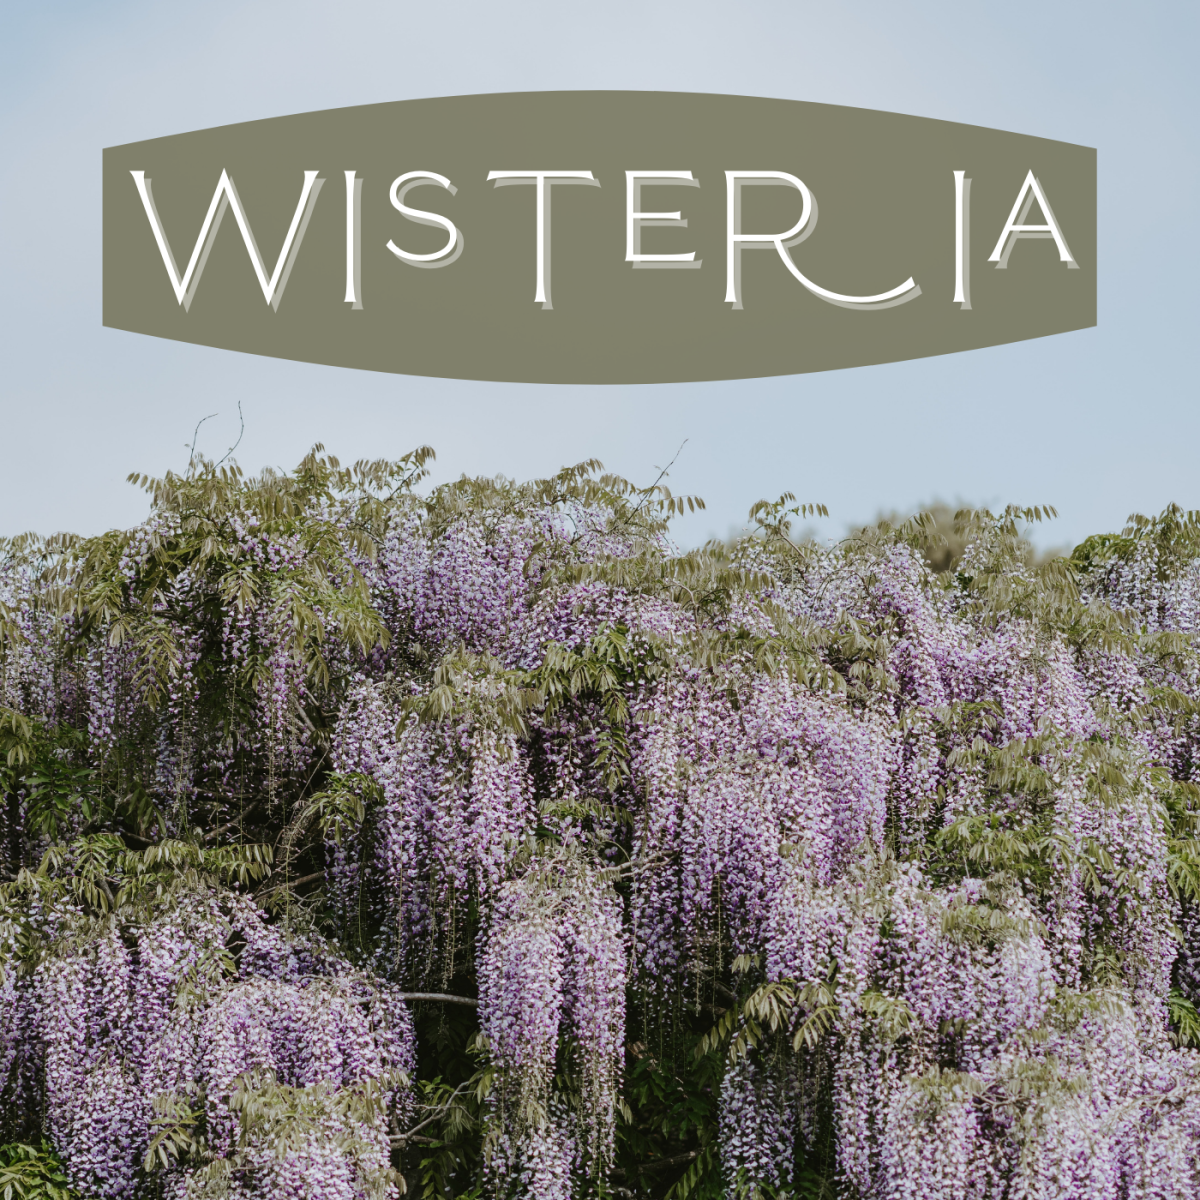 Wisteria is a vining plant with gorgeous cascading blooms.